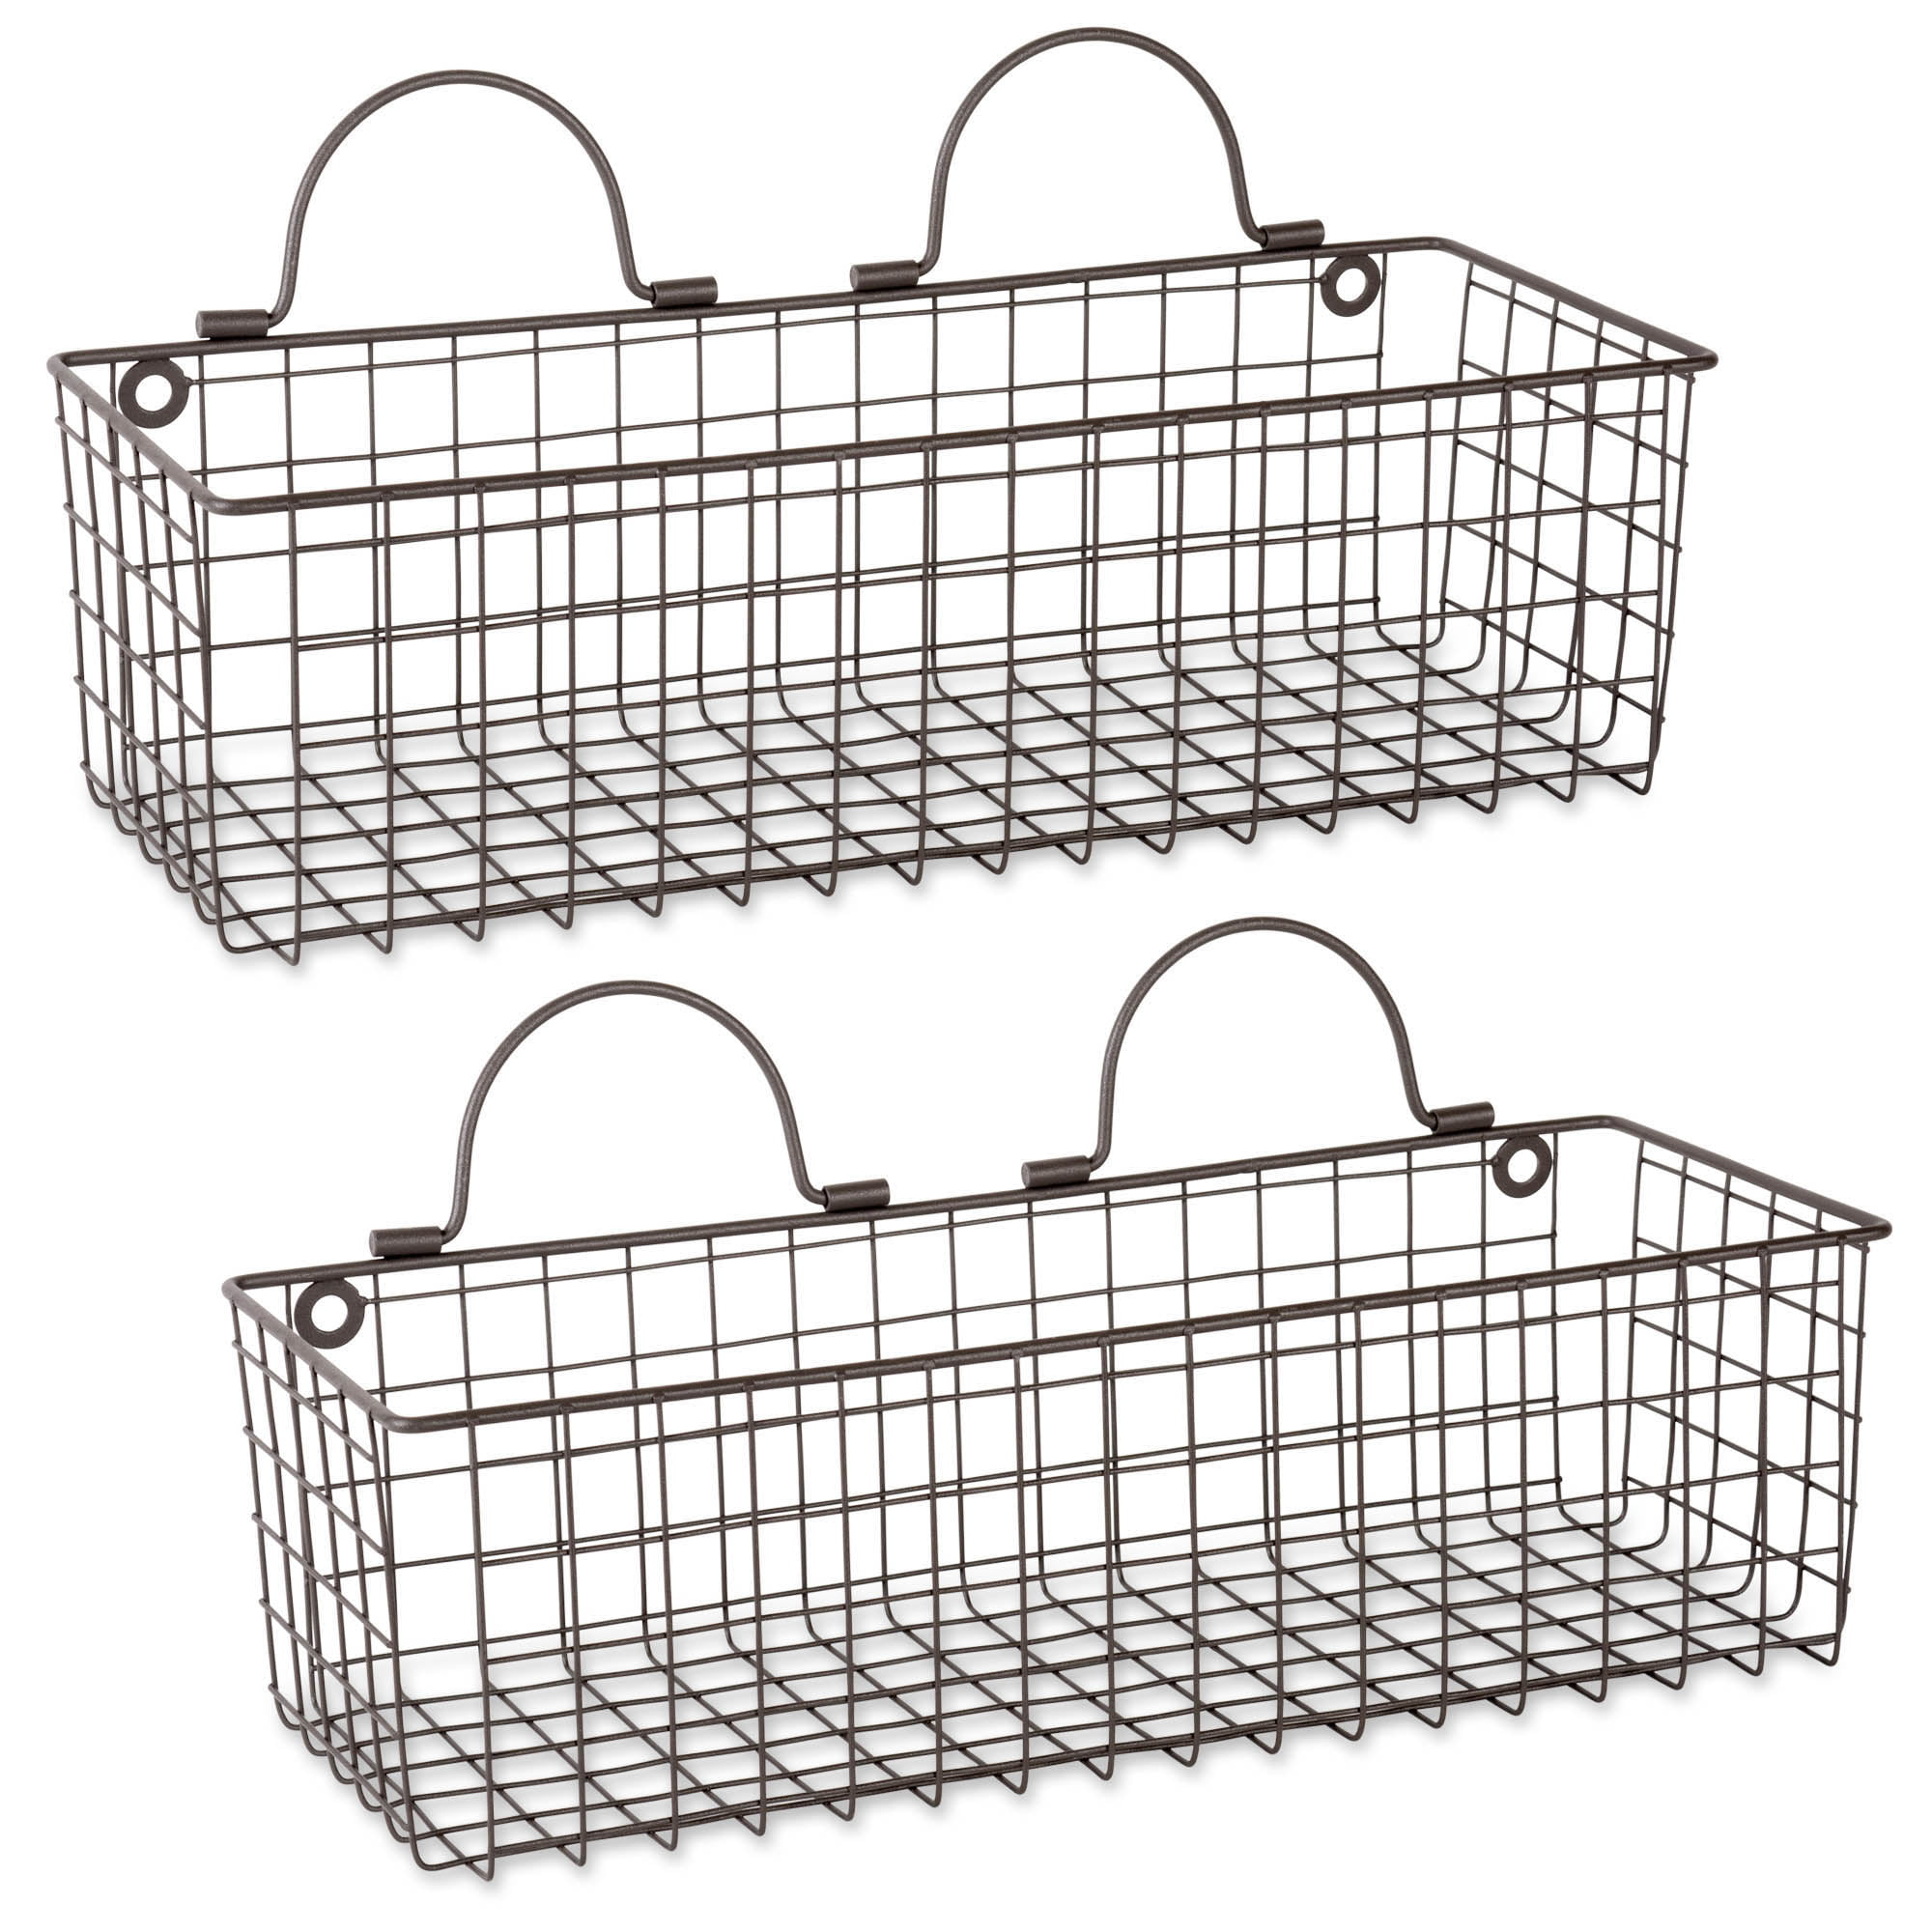 Honey and Me Antique Farmhouse Silver 17 x 13 Inch Metal Hanging Decorative Flower Wall Baskets 3 Piece Set